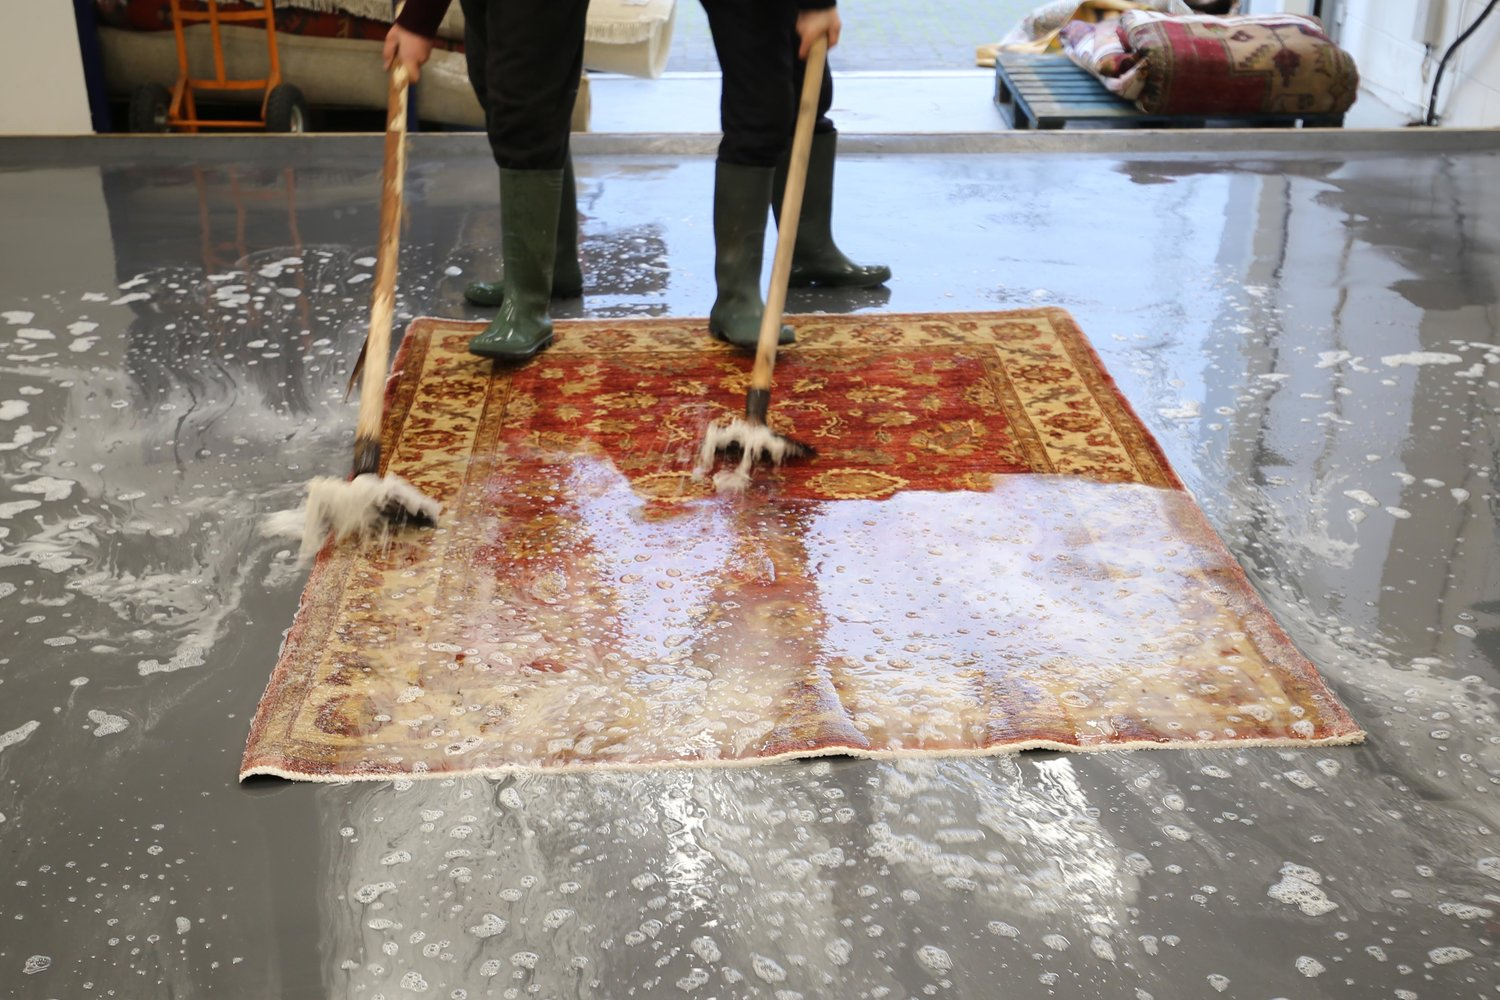 Rug Cleaning - Learn About Our rug cleaning service and receive a free quote